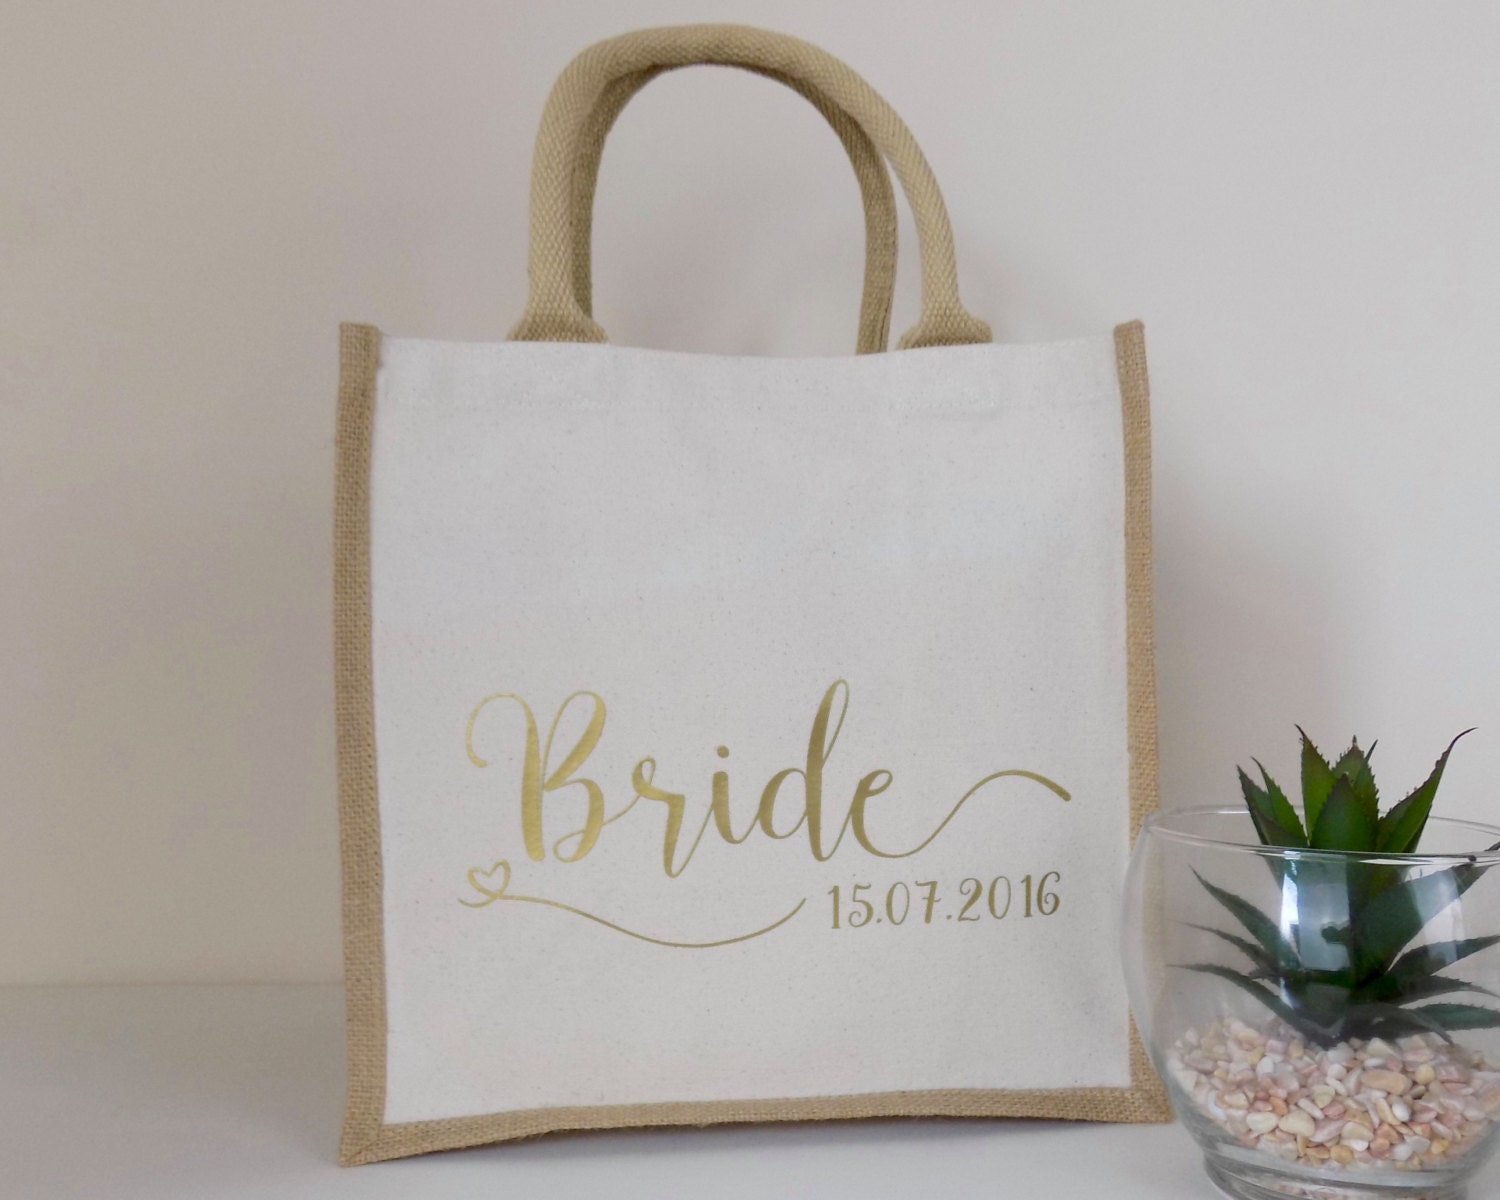 Personalised Wedding Gift Bags Uk : Bride Gift Personalised Jute Bag Ideal Wedding Gift Cotton